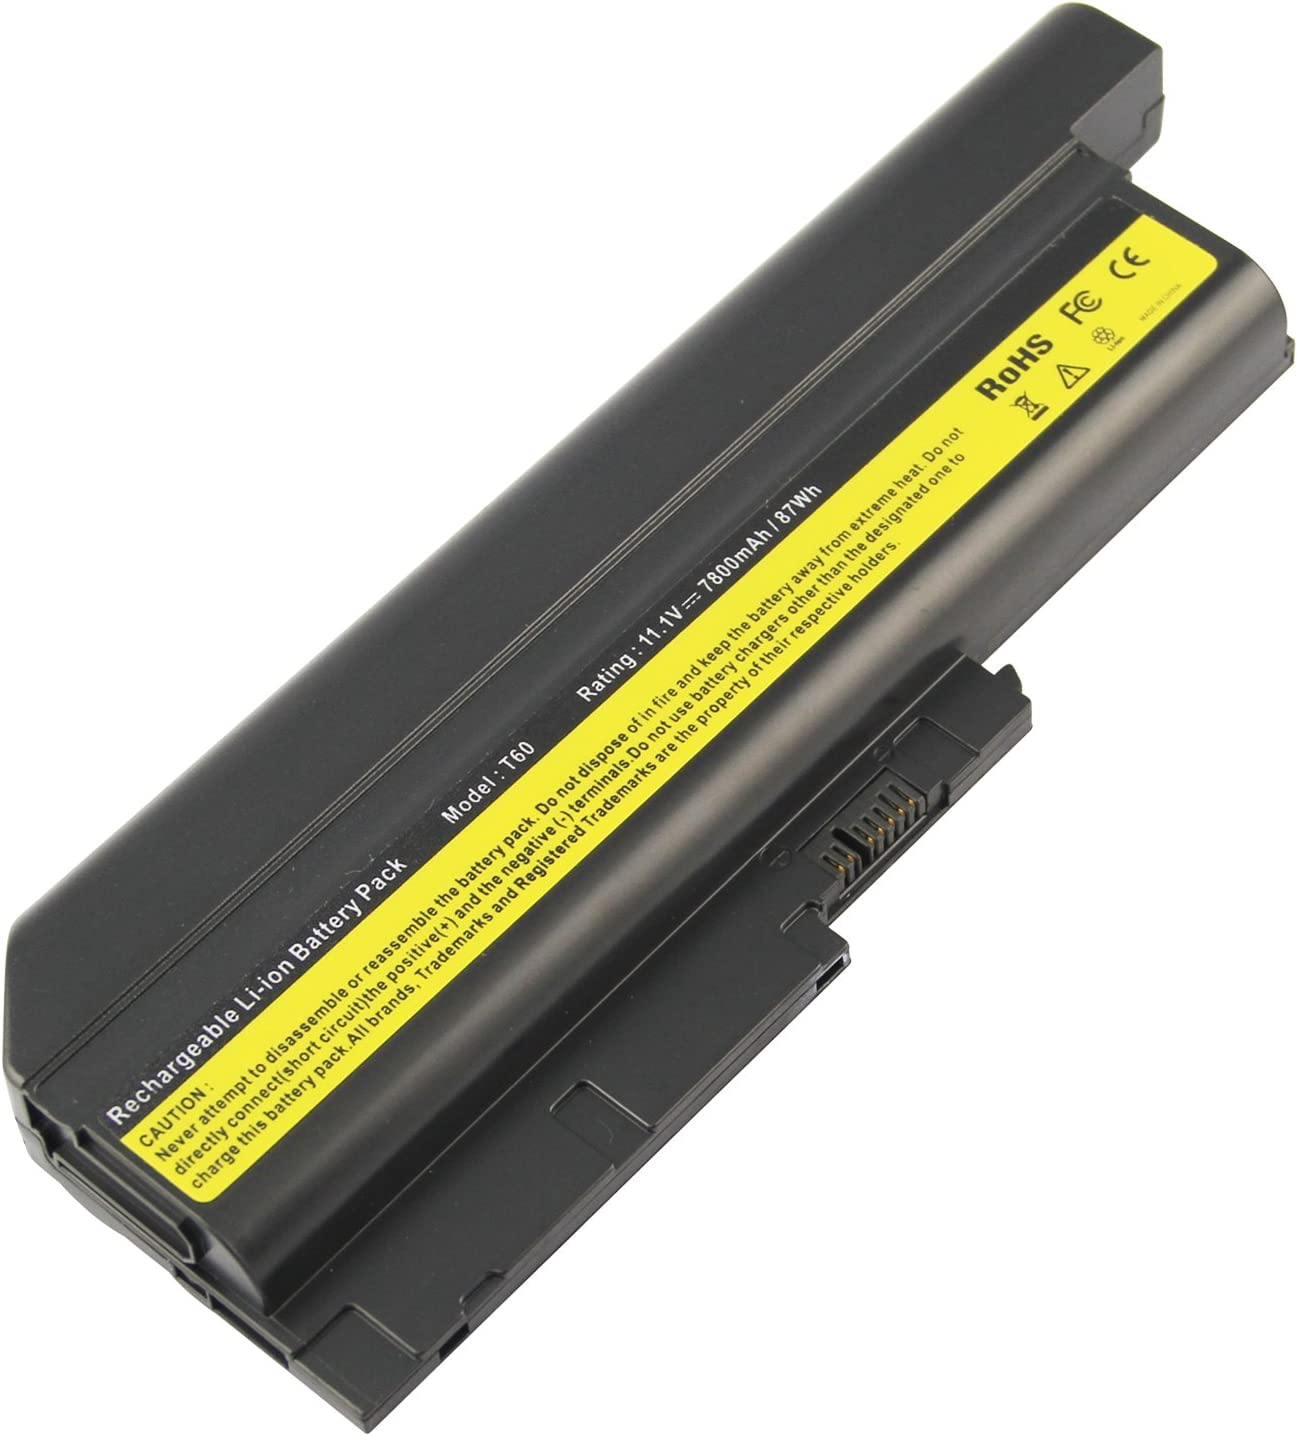 Futurebatt 9 Cell 7800mAh Laptop Battery for IBM Lenovo Thinkpad R60 R60E R61 R61E R61I T60 T60P T61 T61P Z60 Z61 Z61p R500 T500 W500 SL500 SL400 SL300 40Y6799 42T4621 Notebook